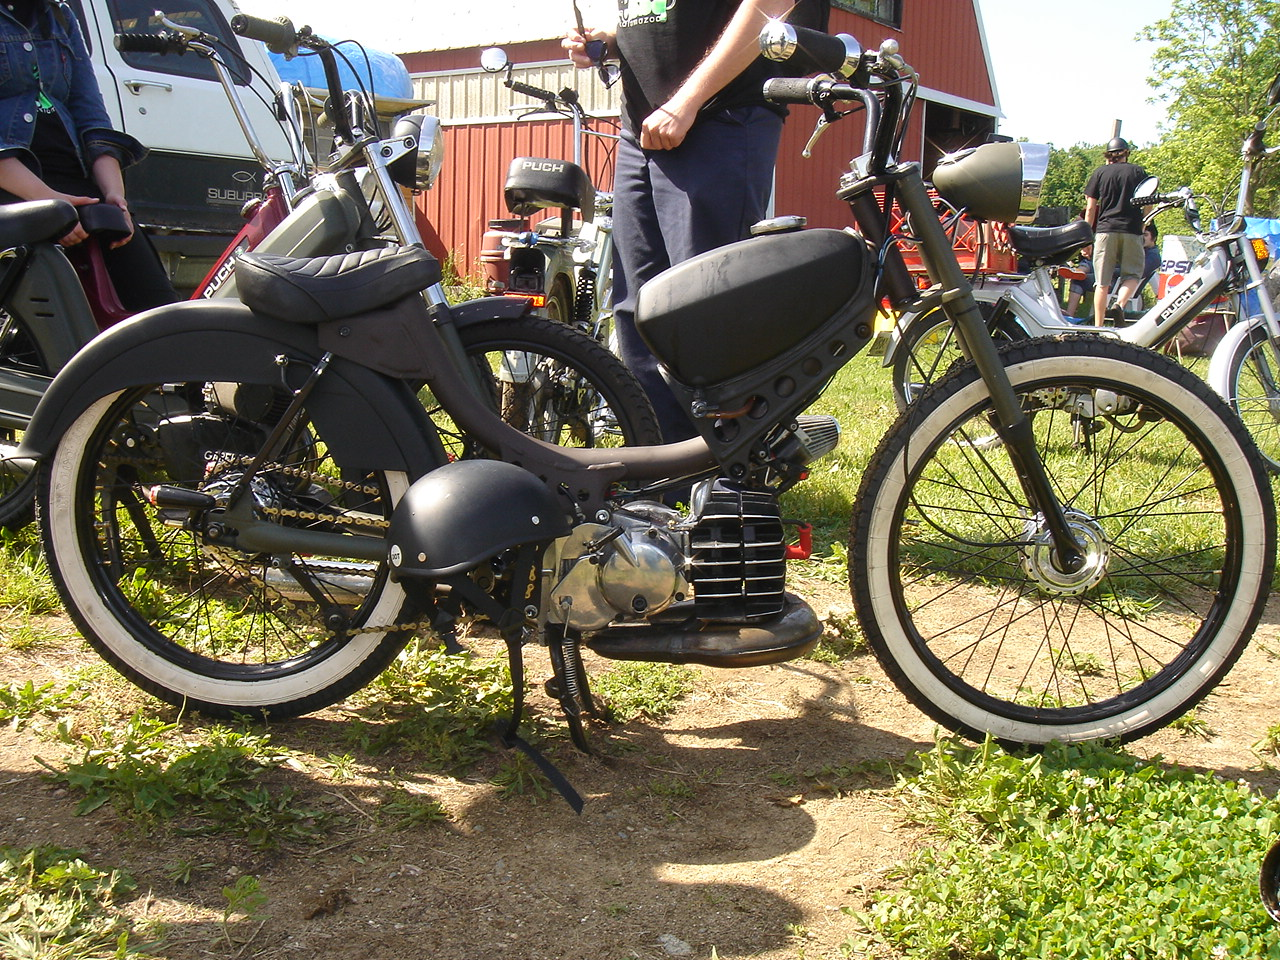 1000+ images about Little Lou's Pinto bobber on Pinterest ...  1000+ images ab...